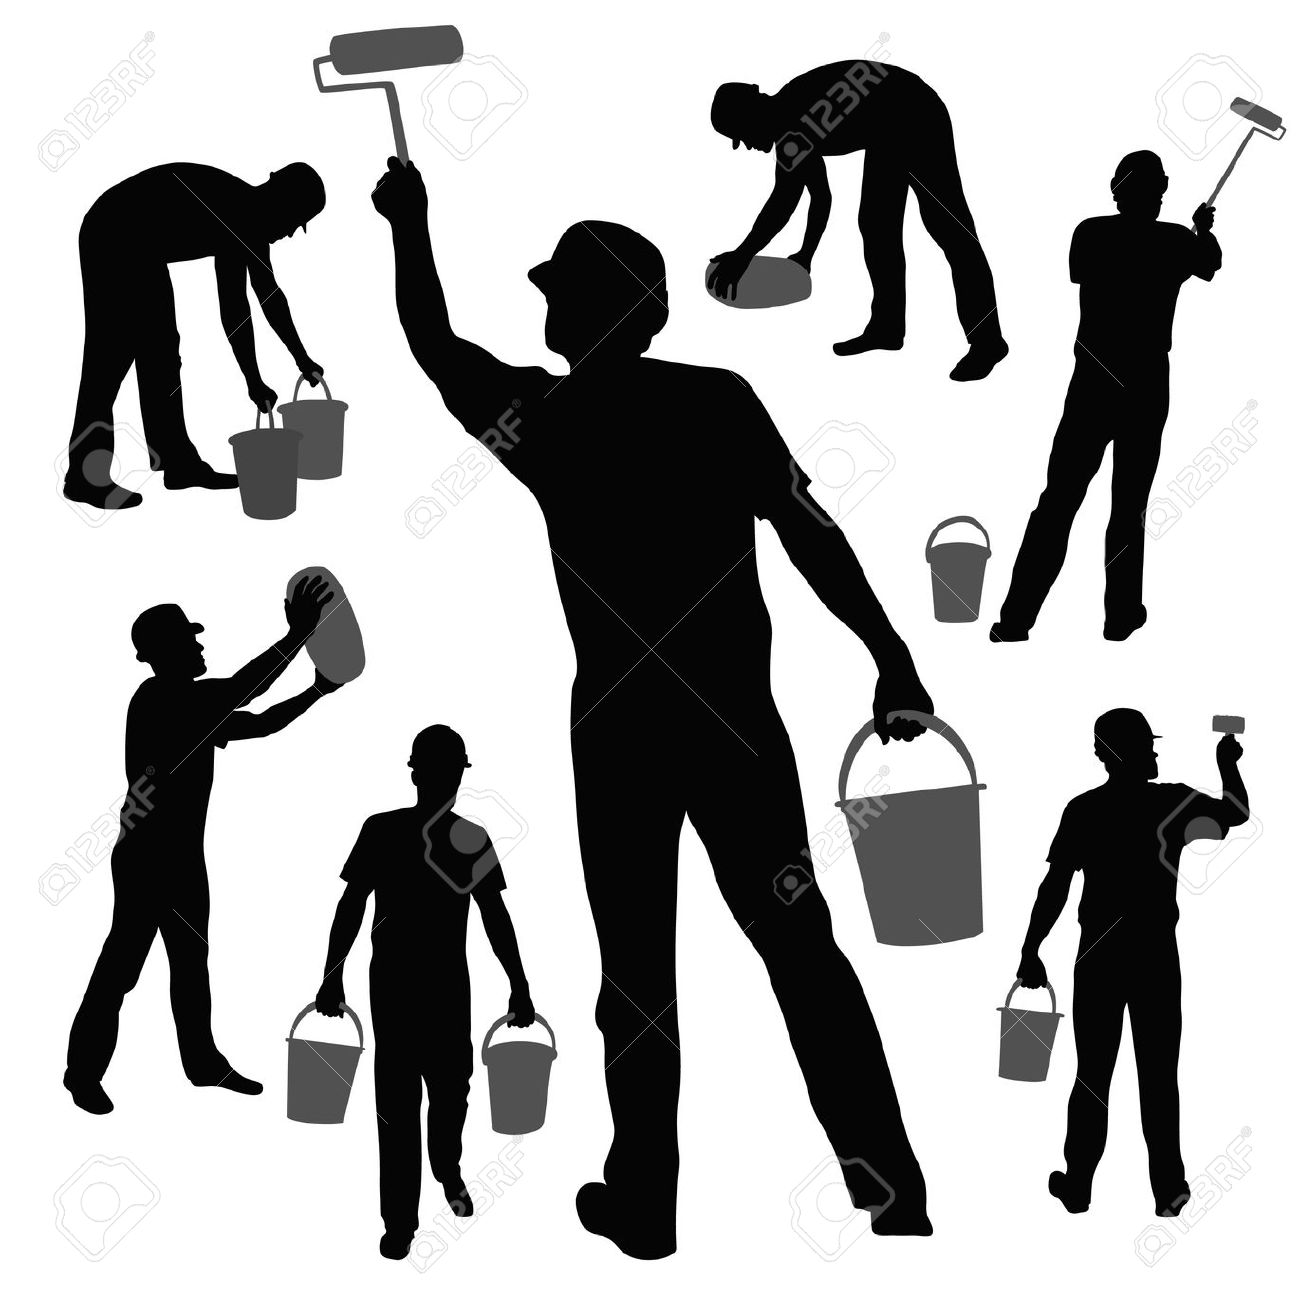 Workers Silhouettes Collection Royalty Free Cliparts, Vectors, And.